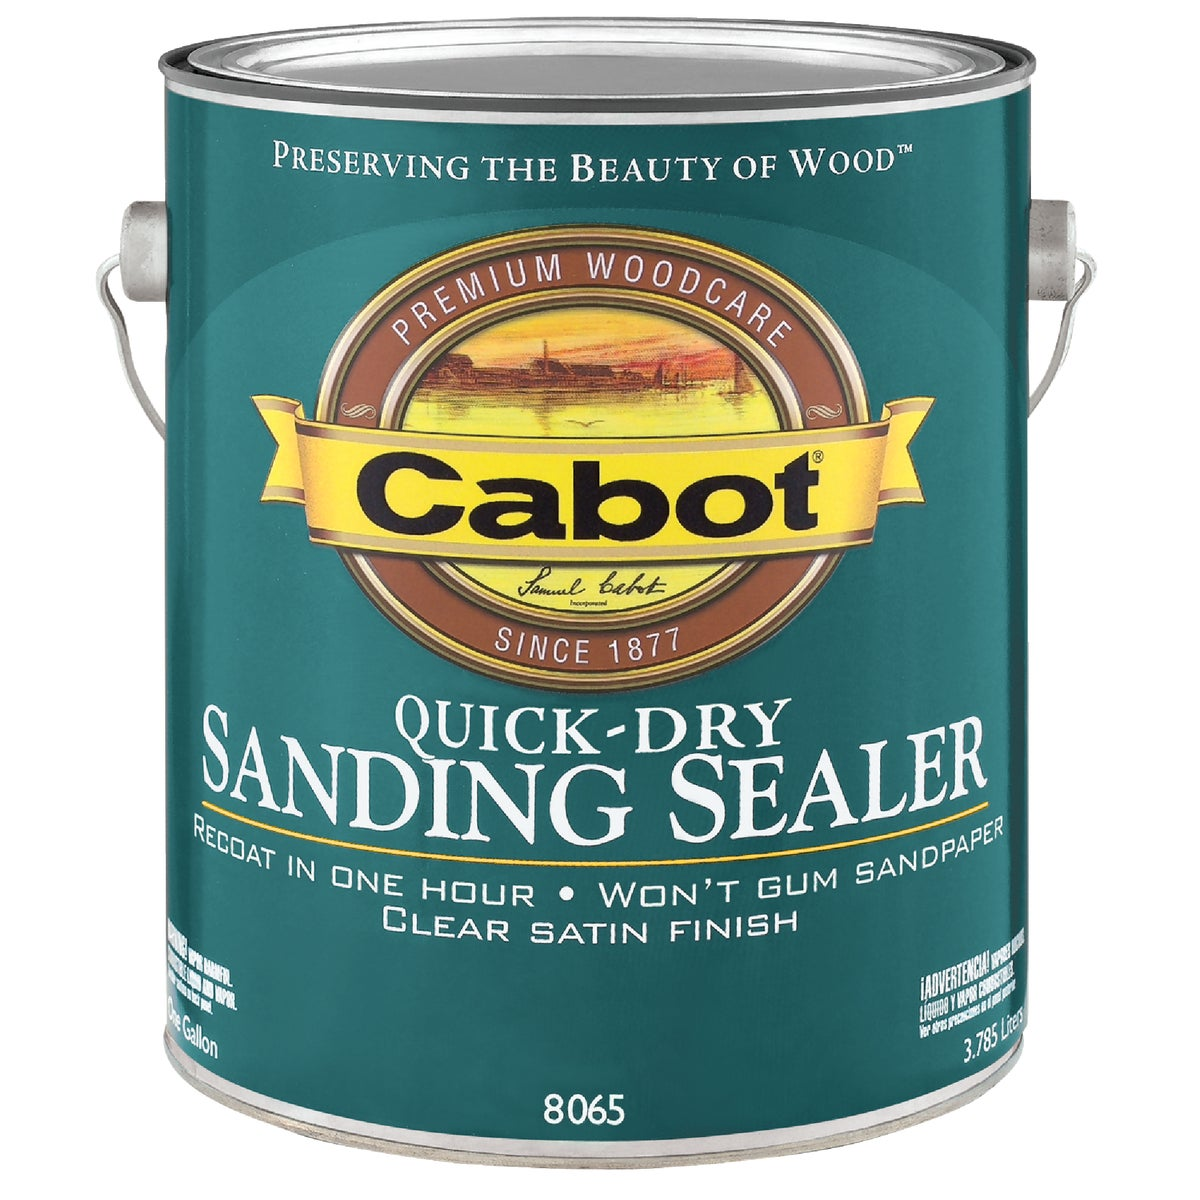 VARNISH SANDING SEALER - 144.0008065.007 by Valspar Corp